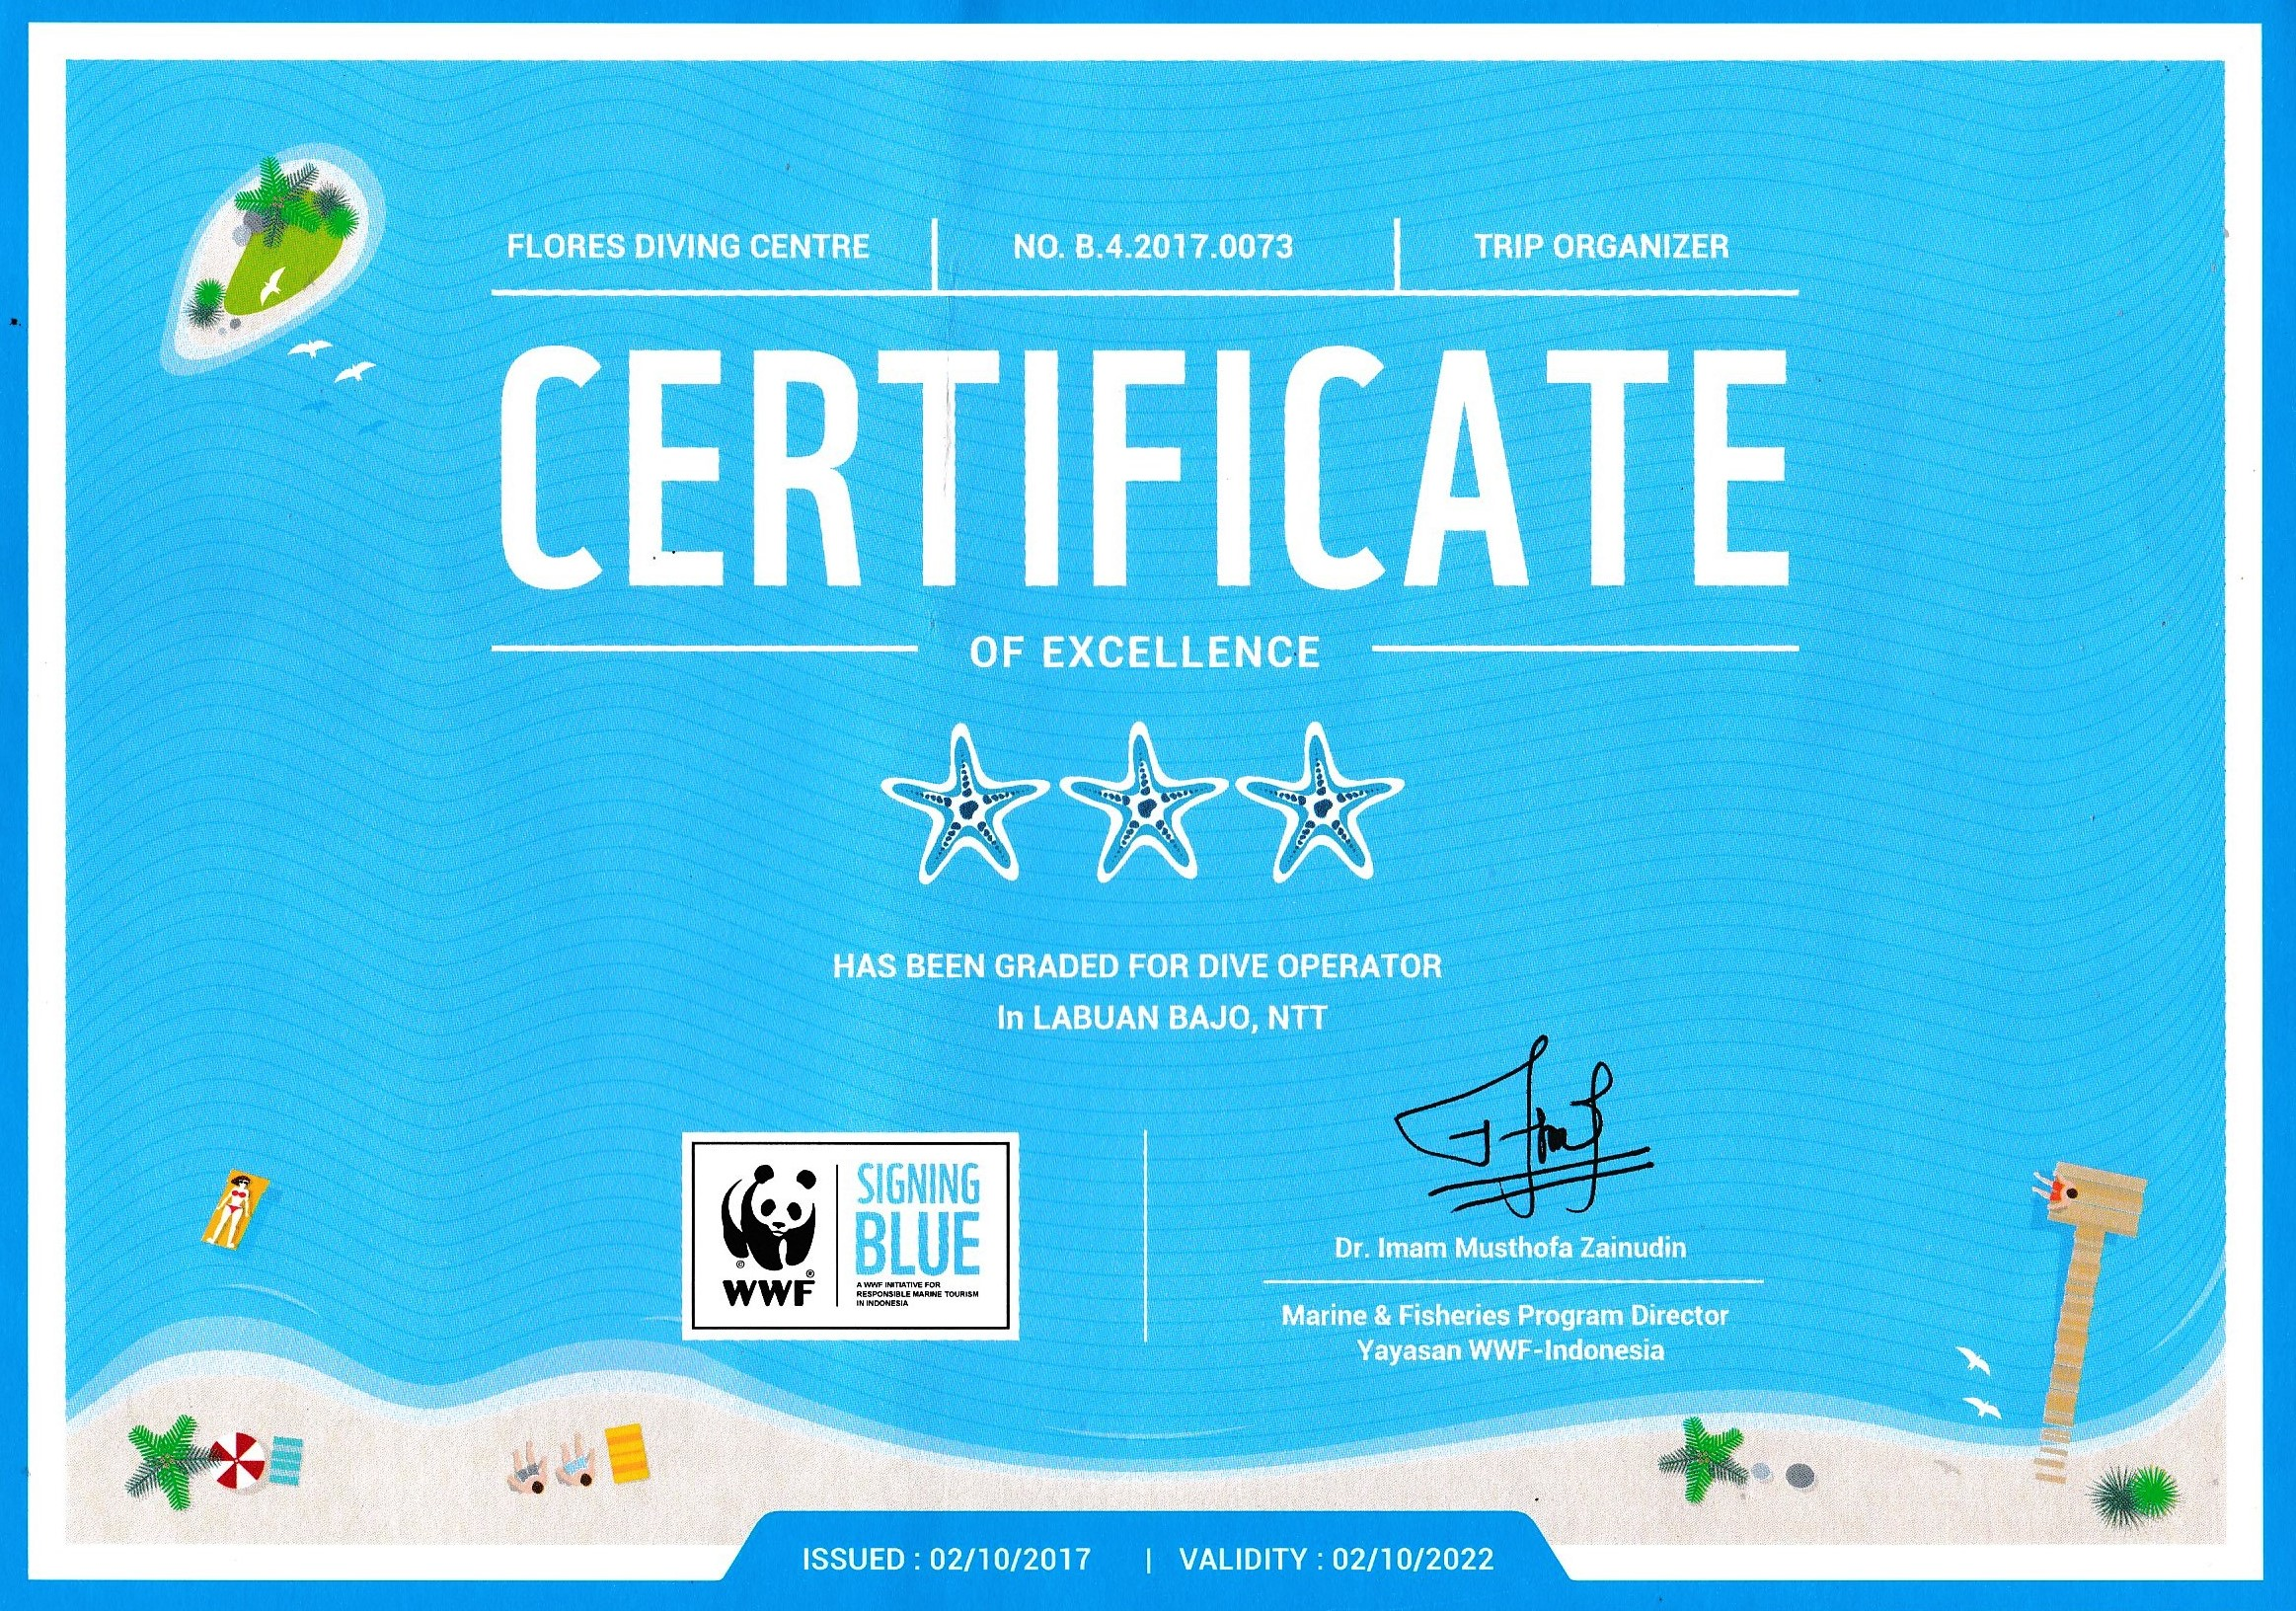 WWF Signing Blue certificate